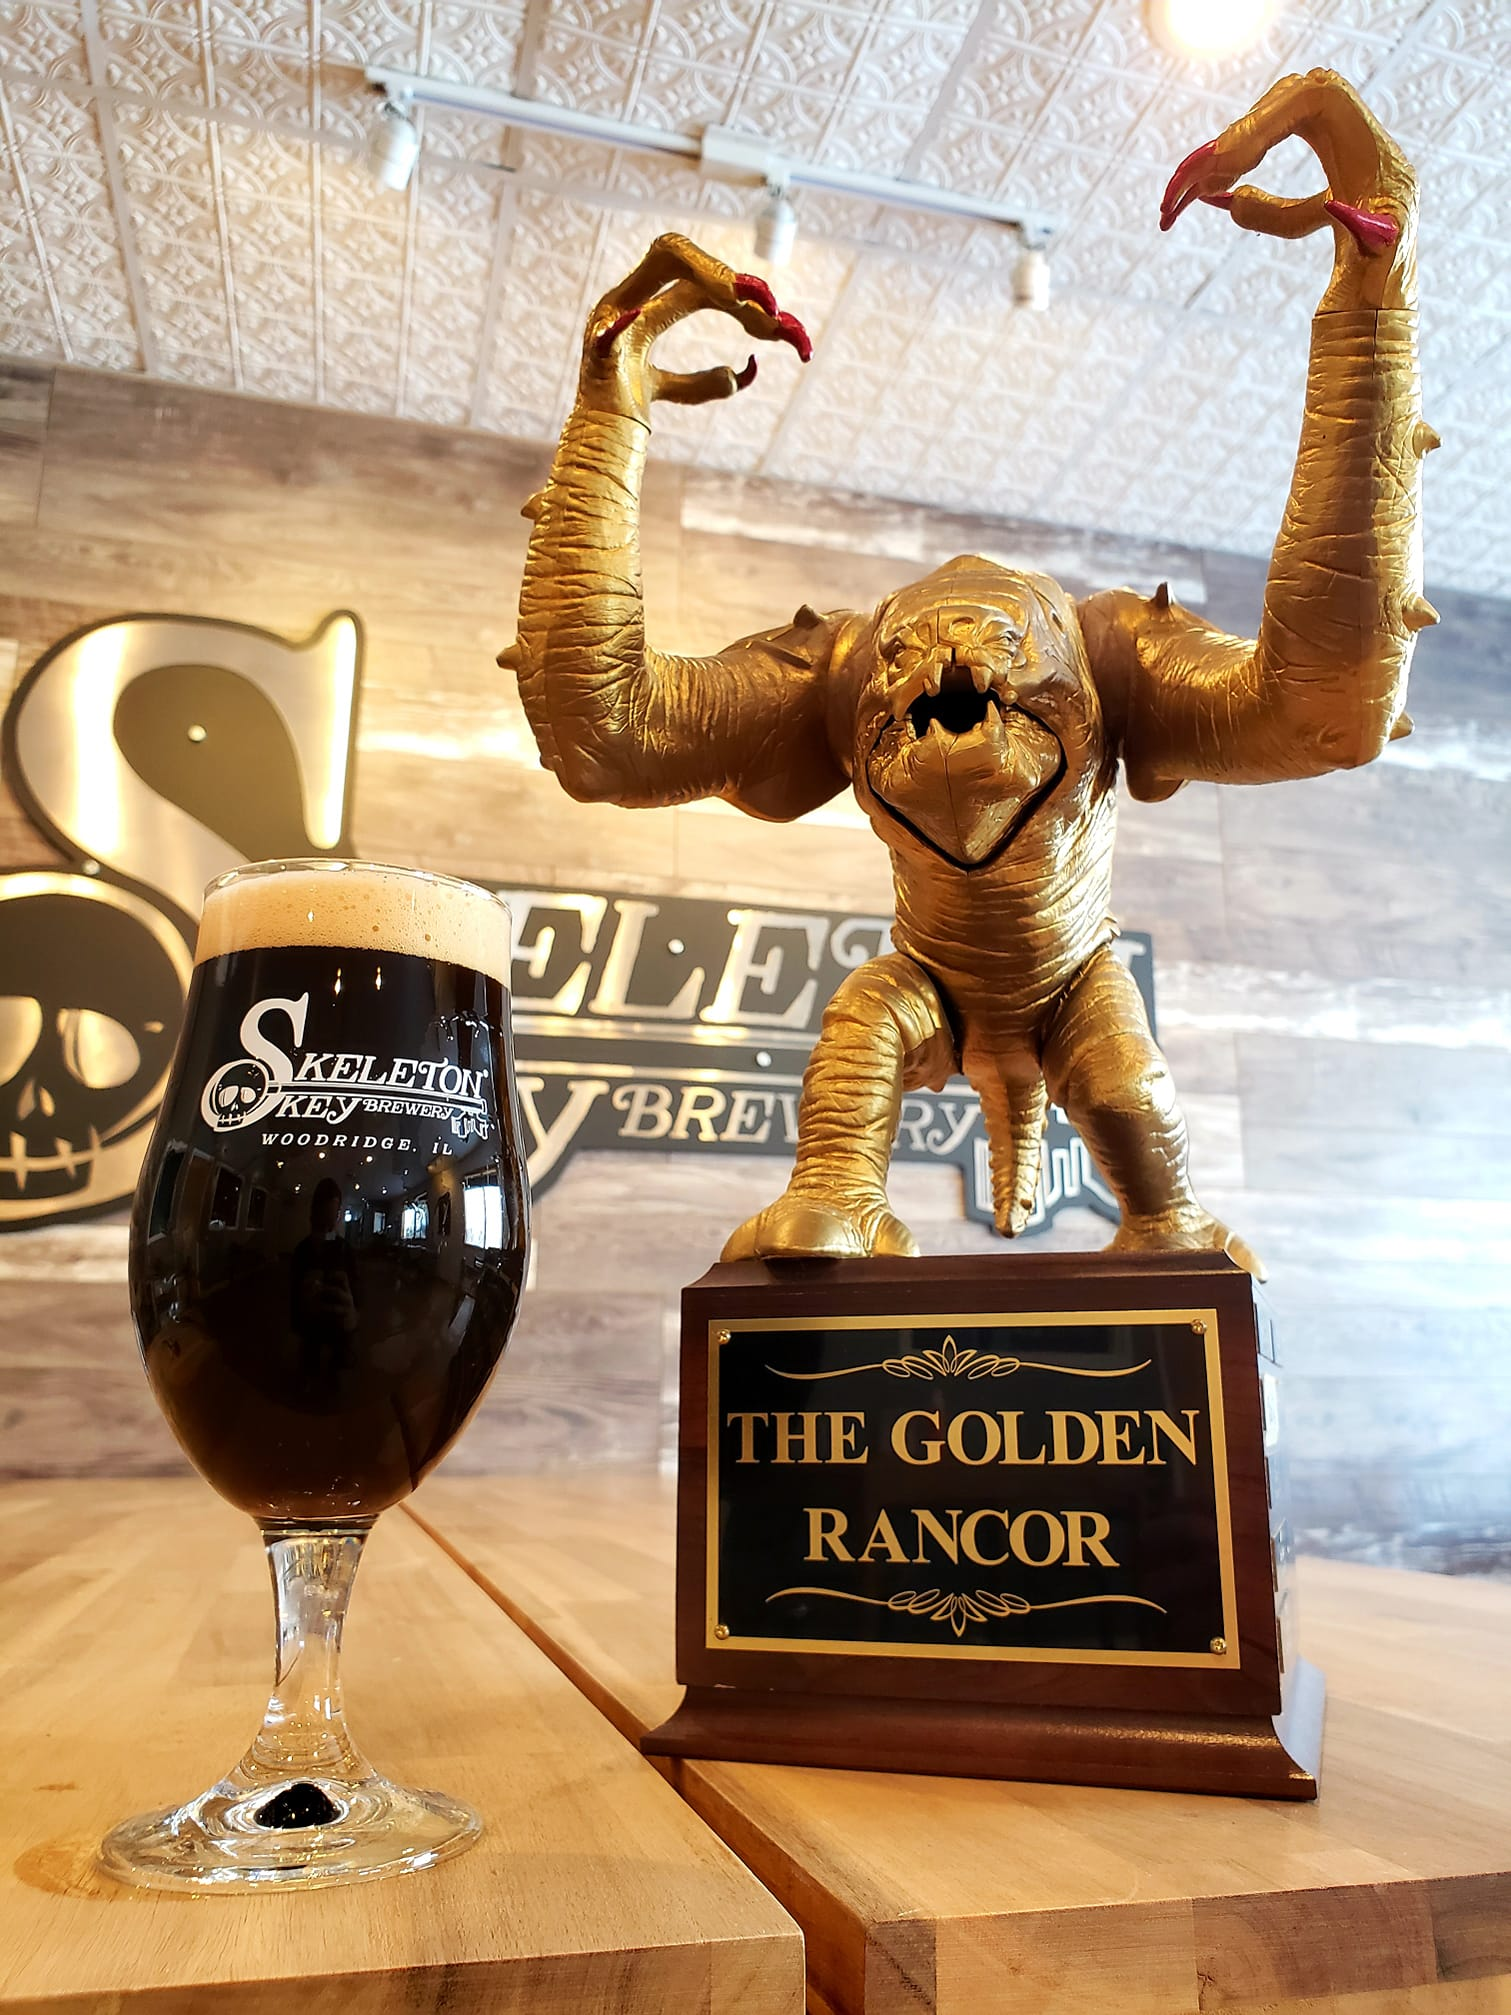 Glass of Plan for Everything from Skeleton Key Brewery next to the Golden Rancor trophy